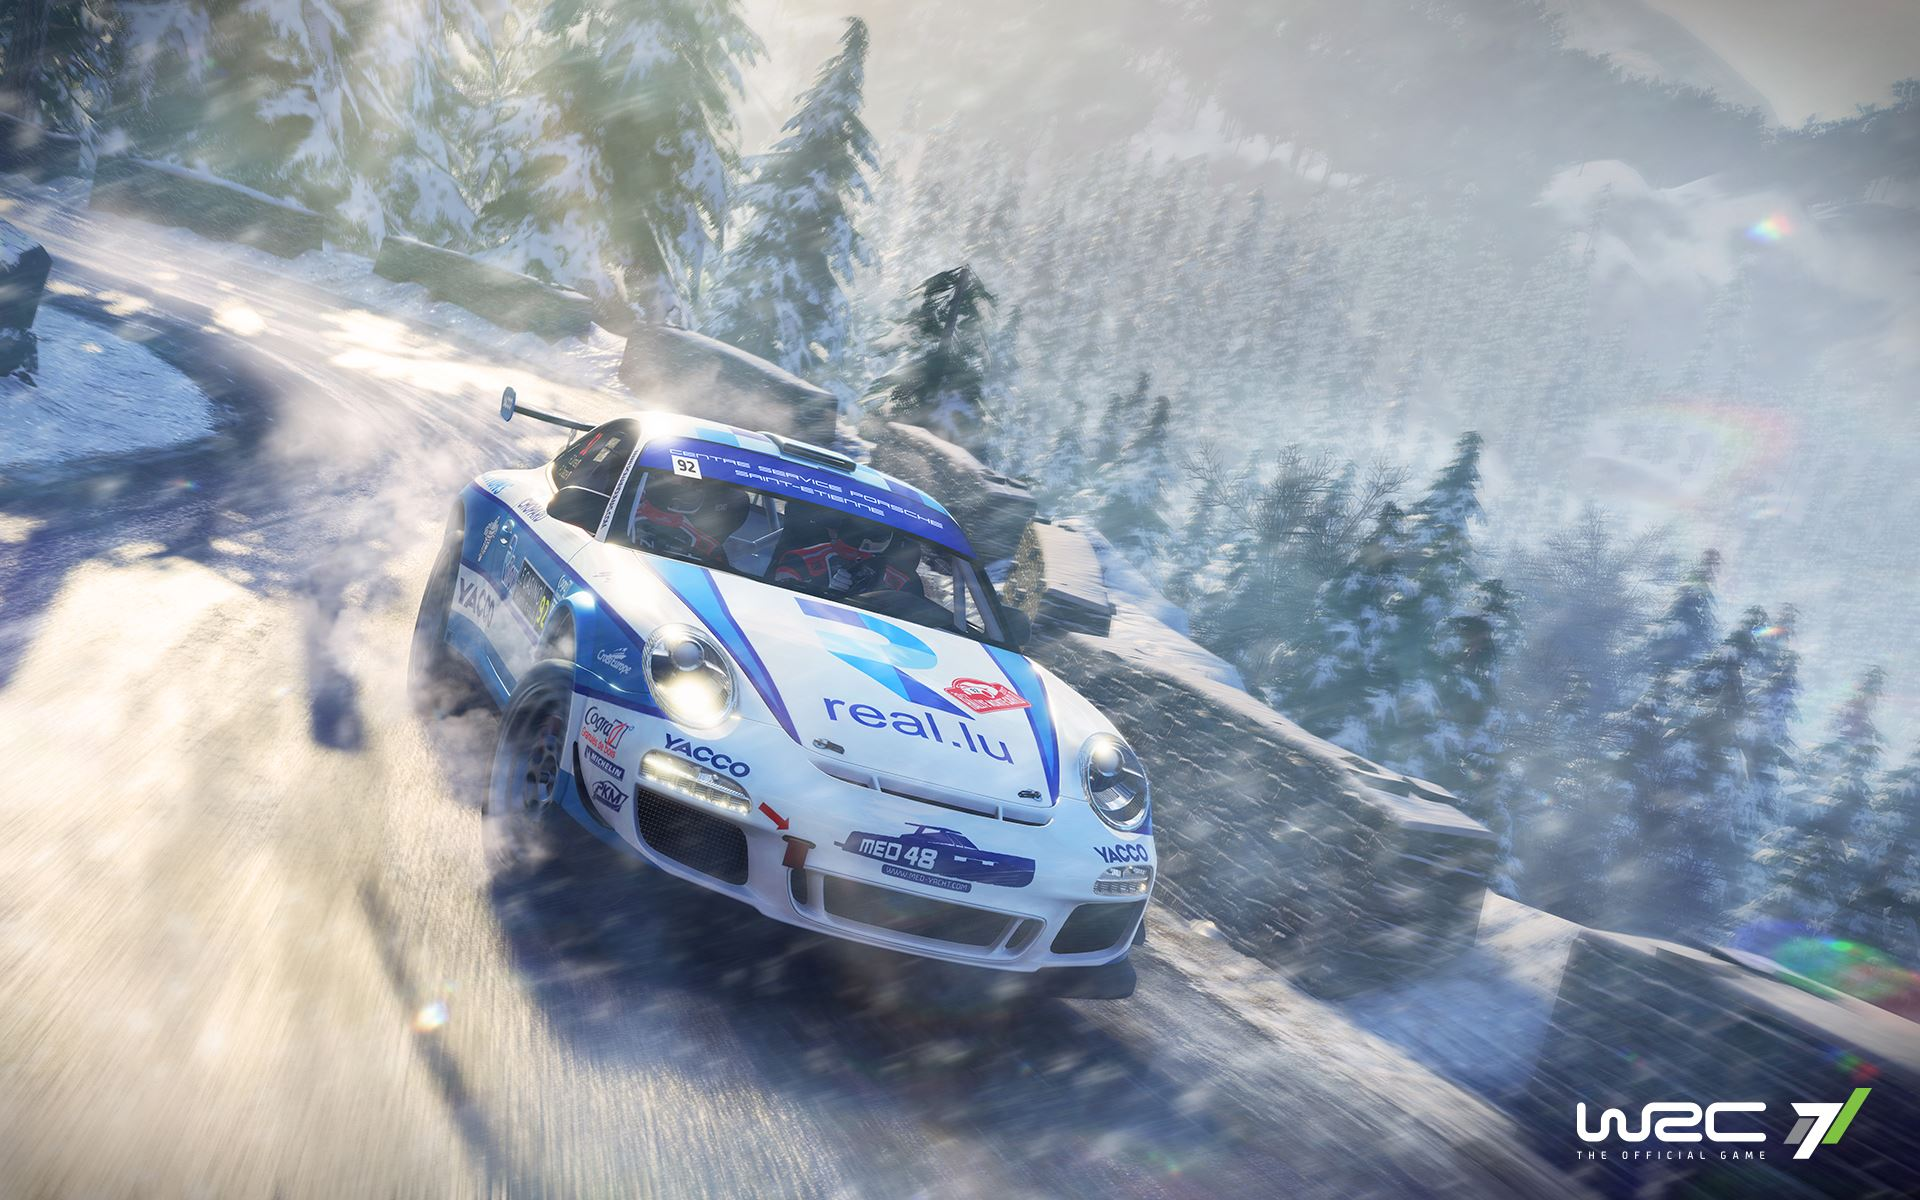 Porsche 911 R-GT rally car announced as WRC 7 pre-order bonus